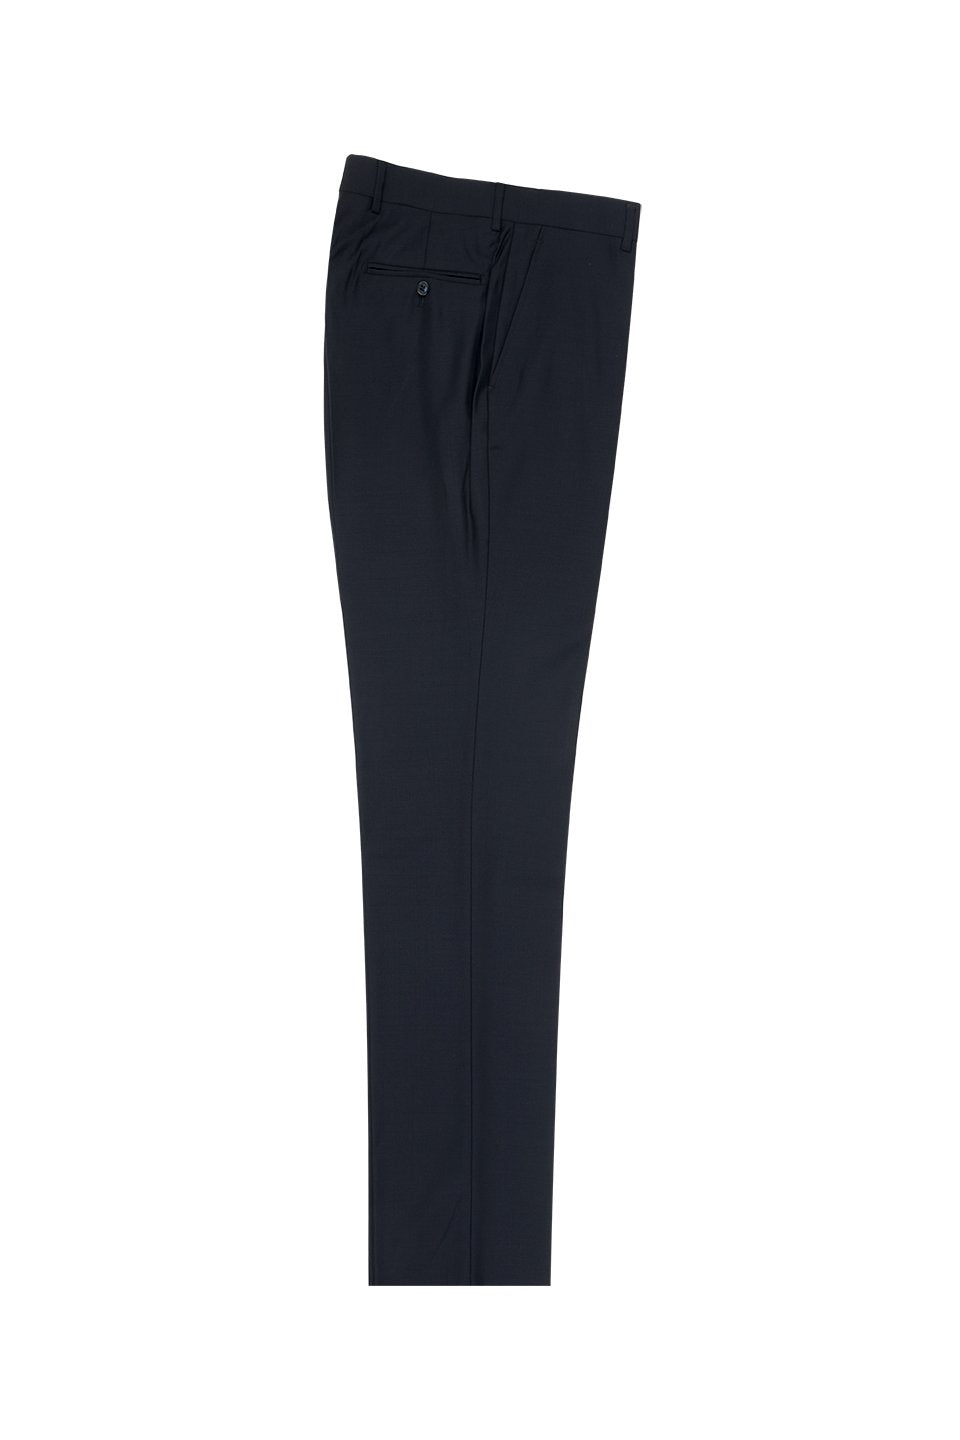 Tiglio Navy Solid Flat Front Slim Fit Dress Pants